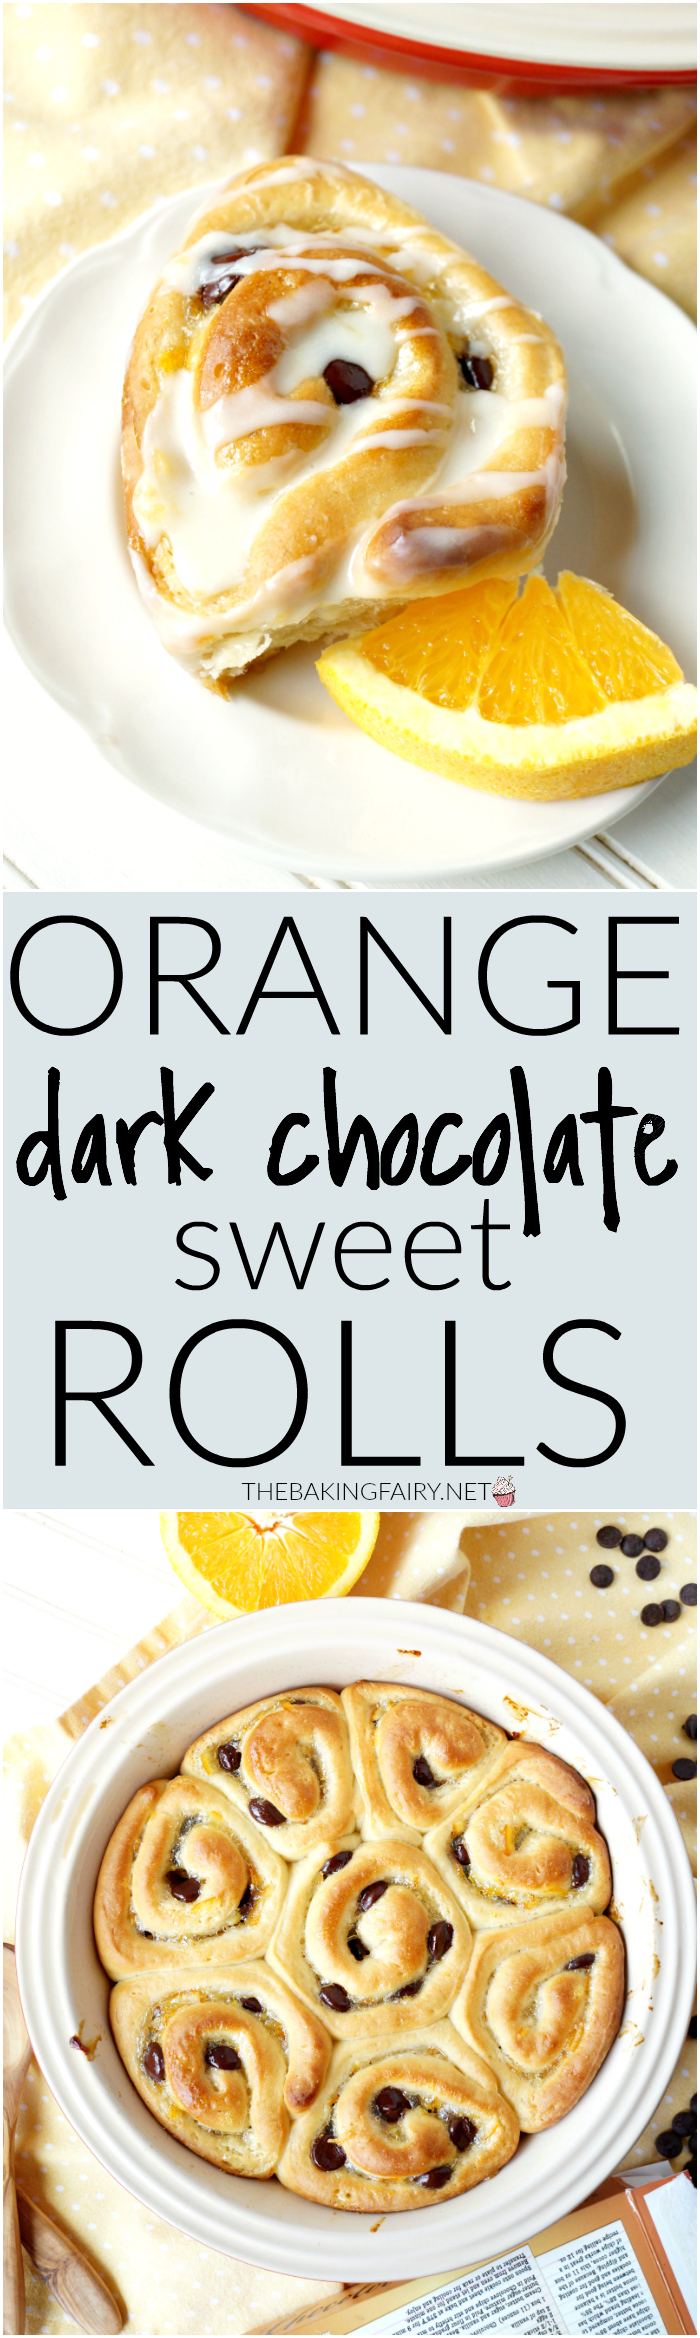 orange dark chocolate sweet rolls | The Baking Fairy